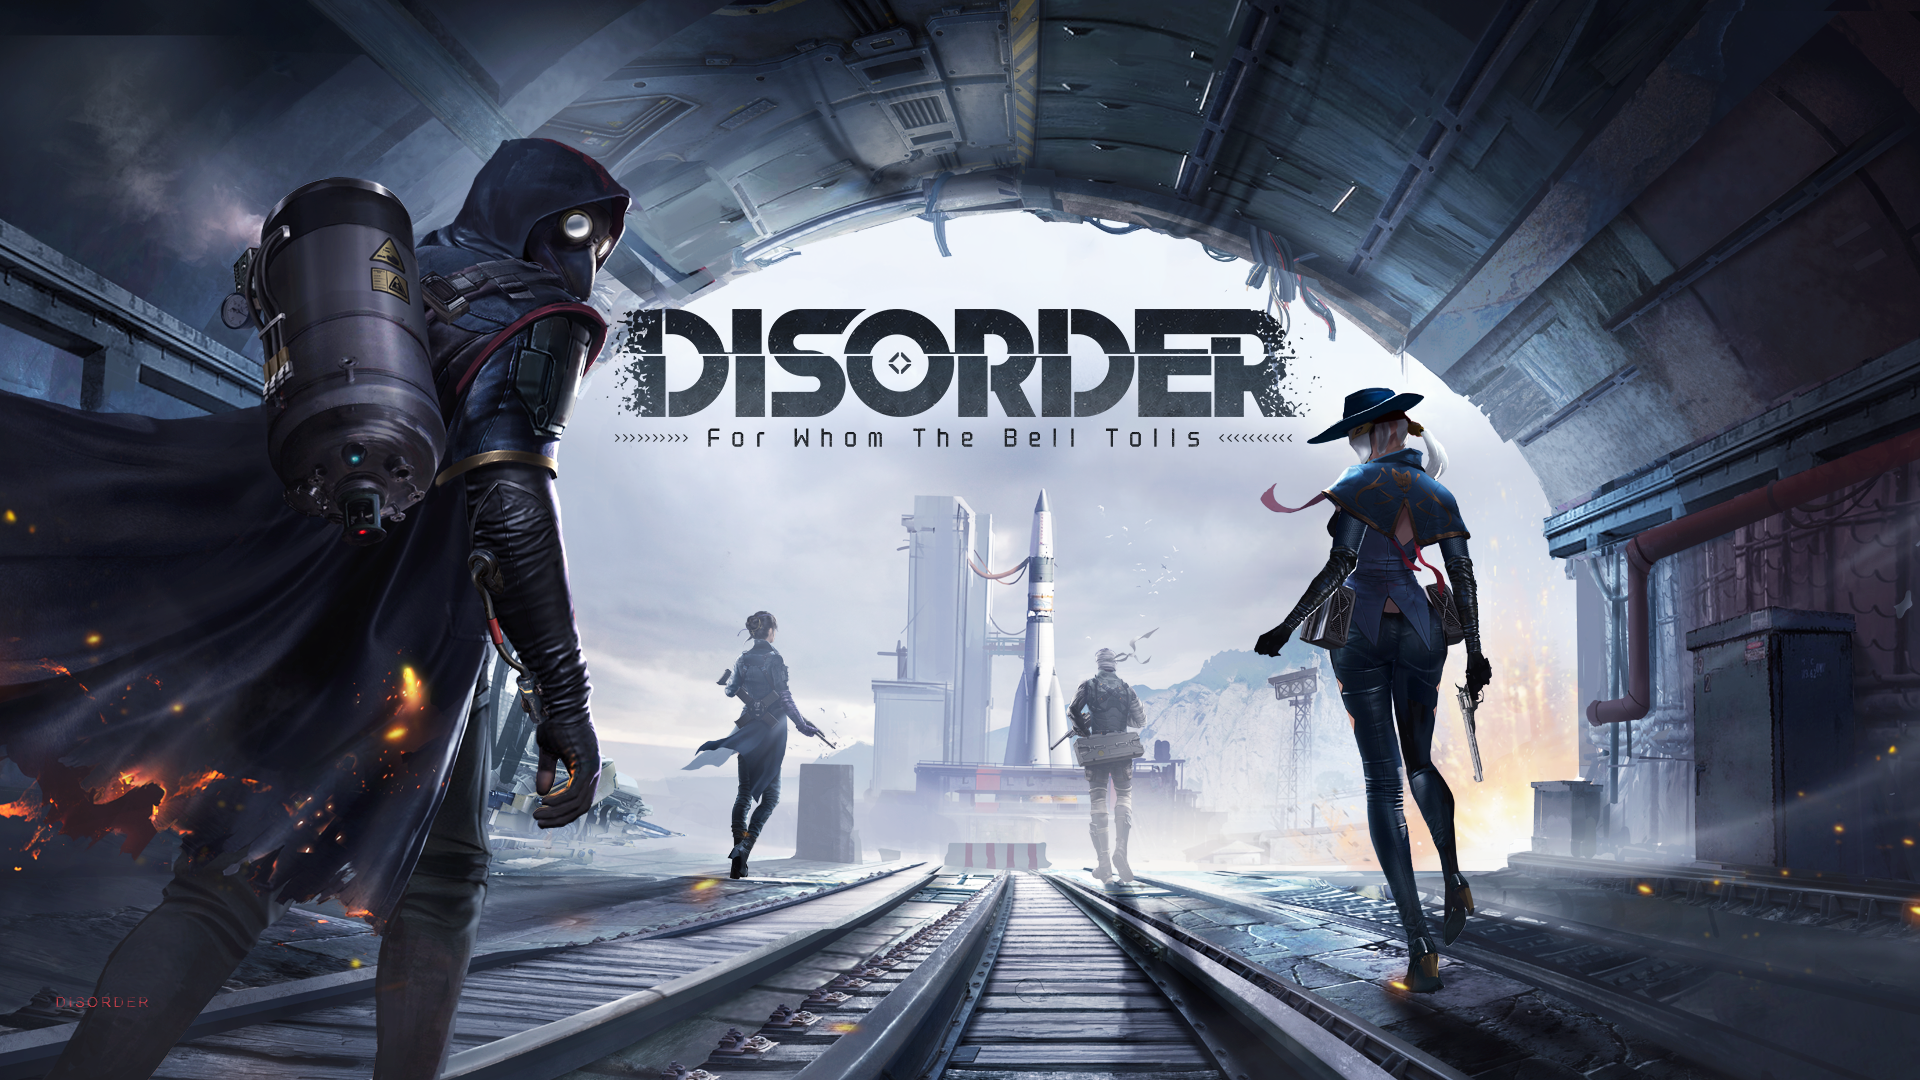 QnA VBage NetEase Announces Post-Apocalyptic Team Shooter 'Disorder', Pre-Registration Now Open